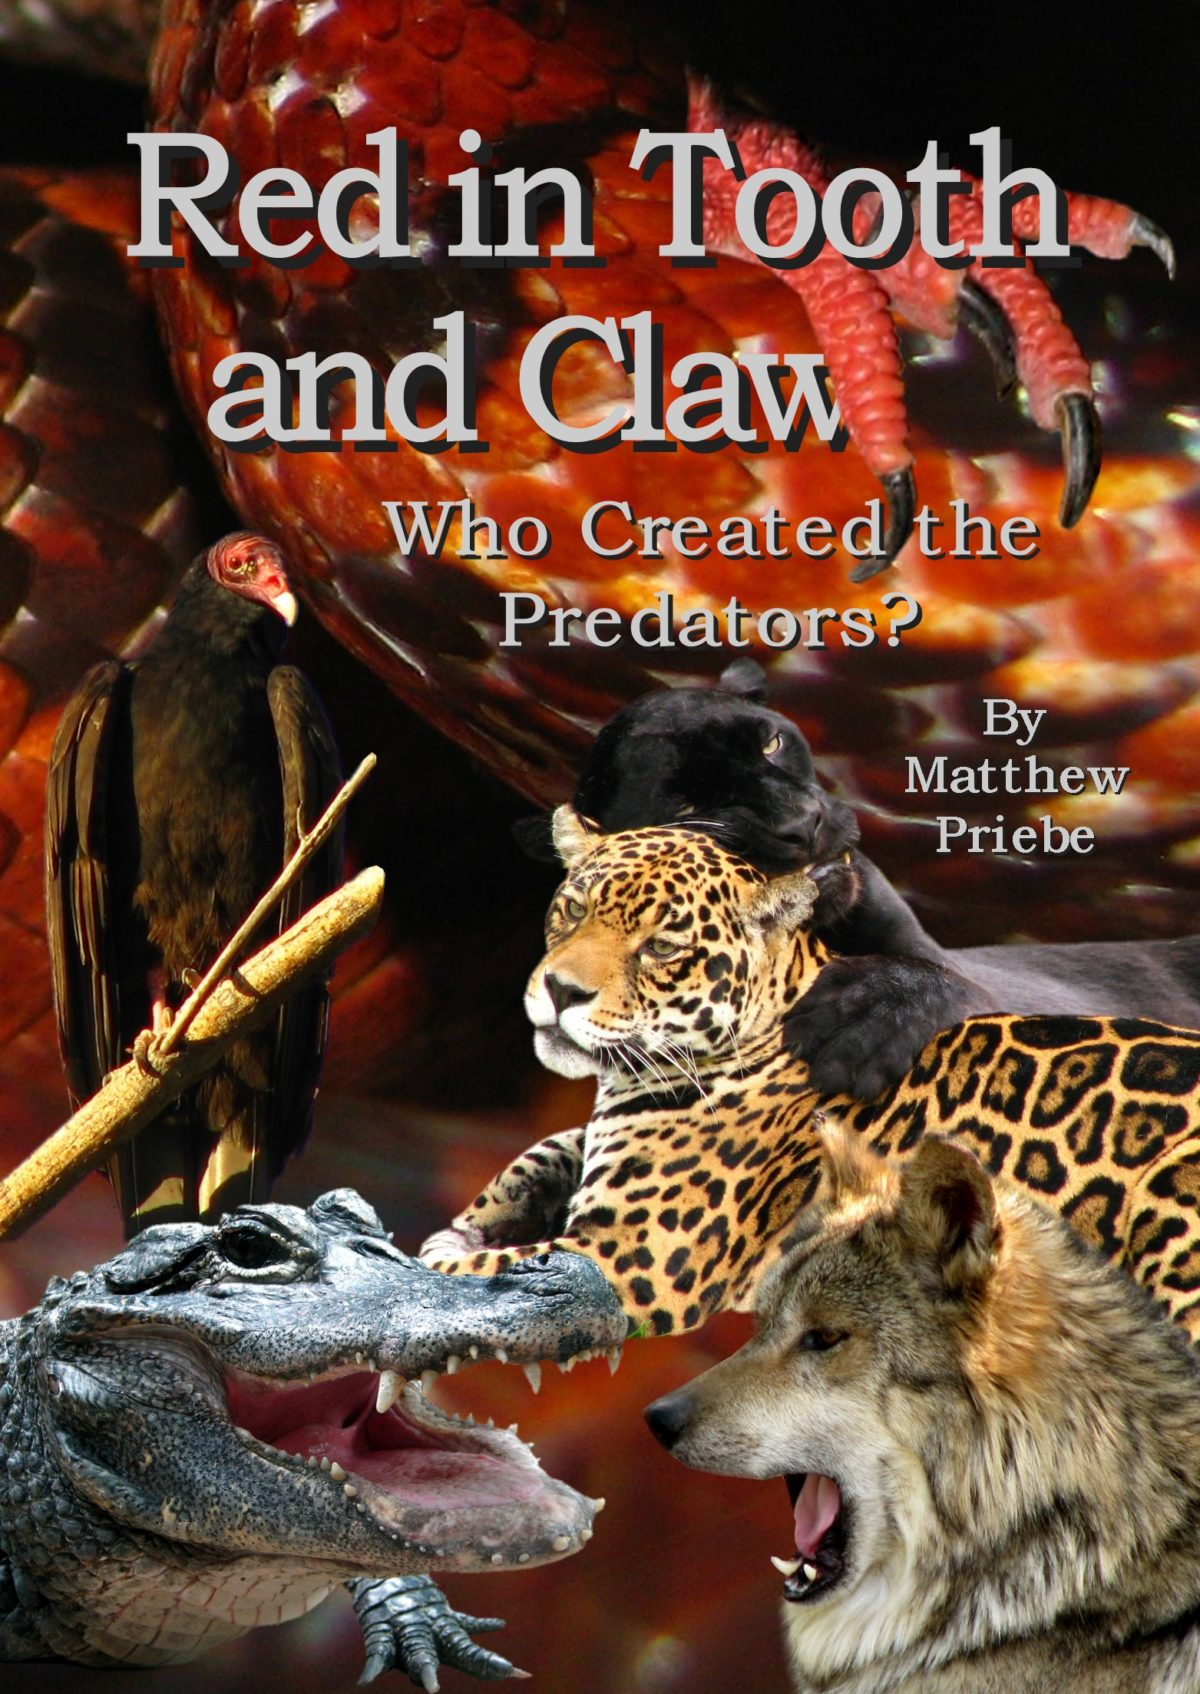 Red in Tooth and Claw… Who Created the Predators?